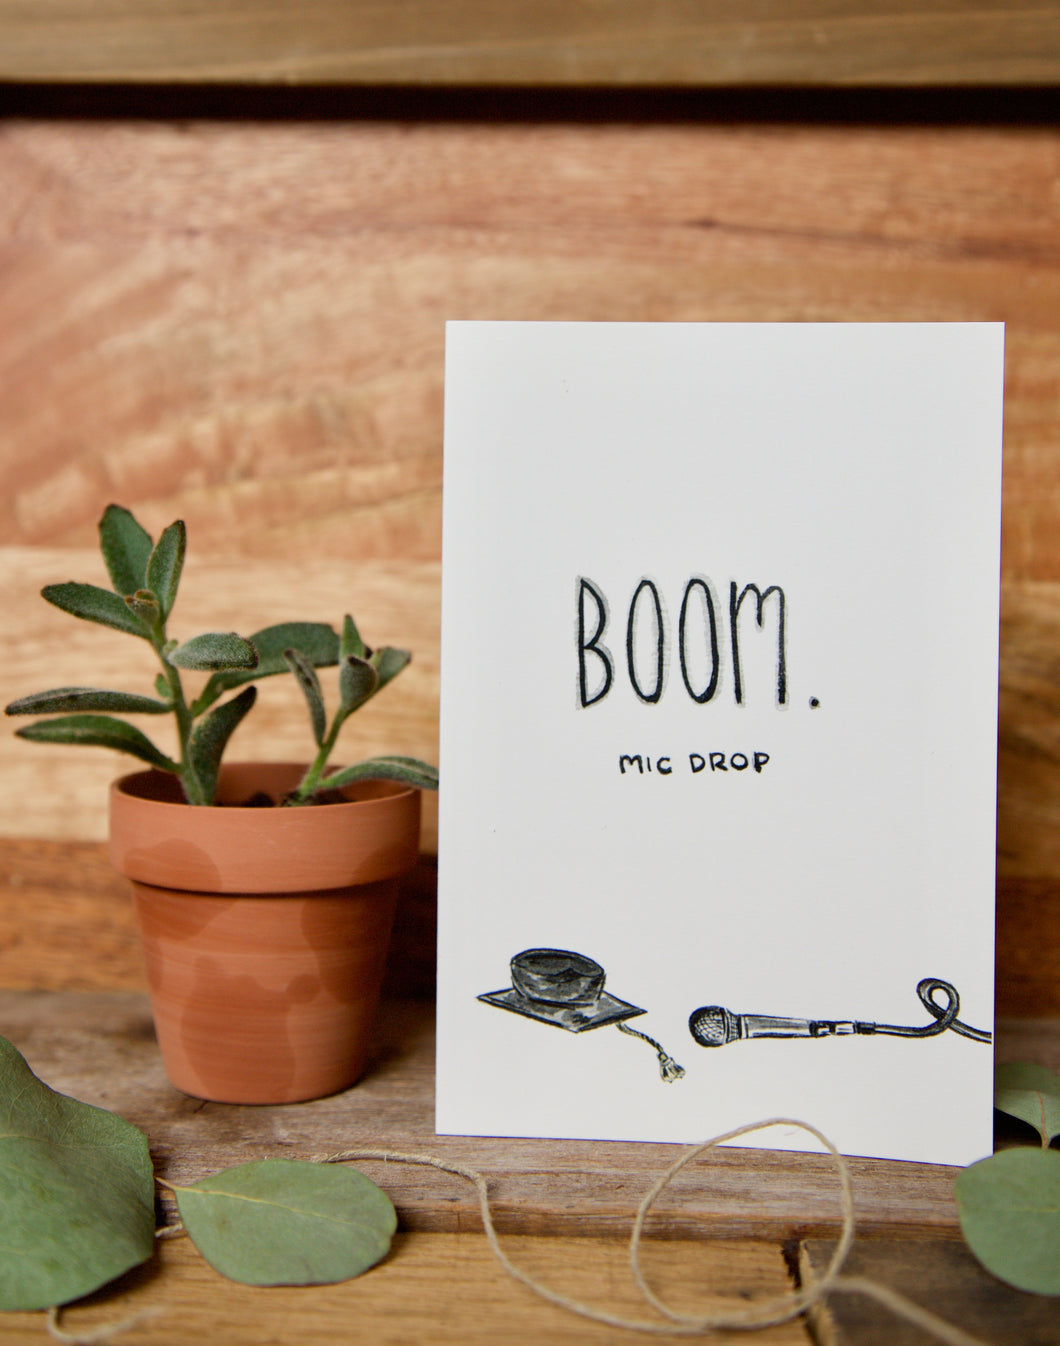 Boom. Mic drop. - 2020 funny graduation card